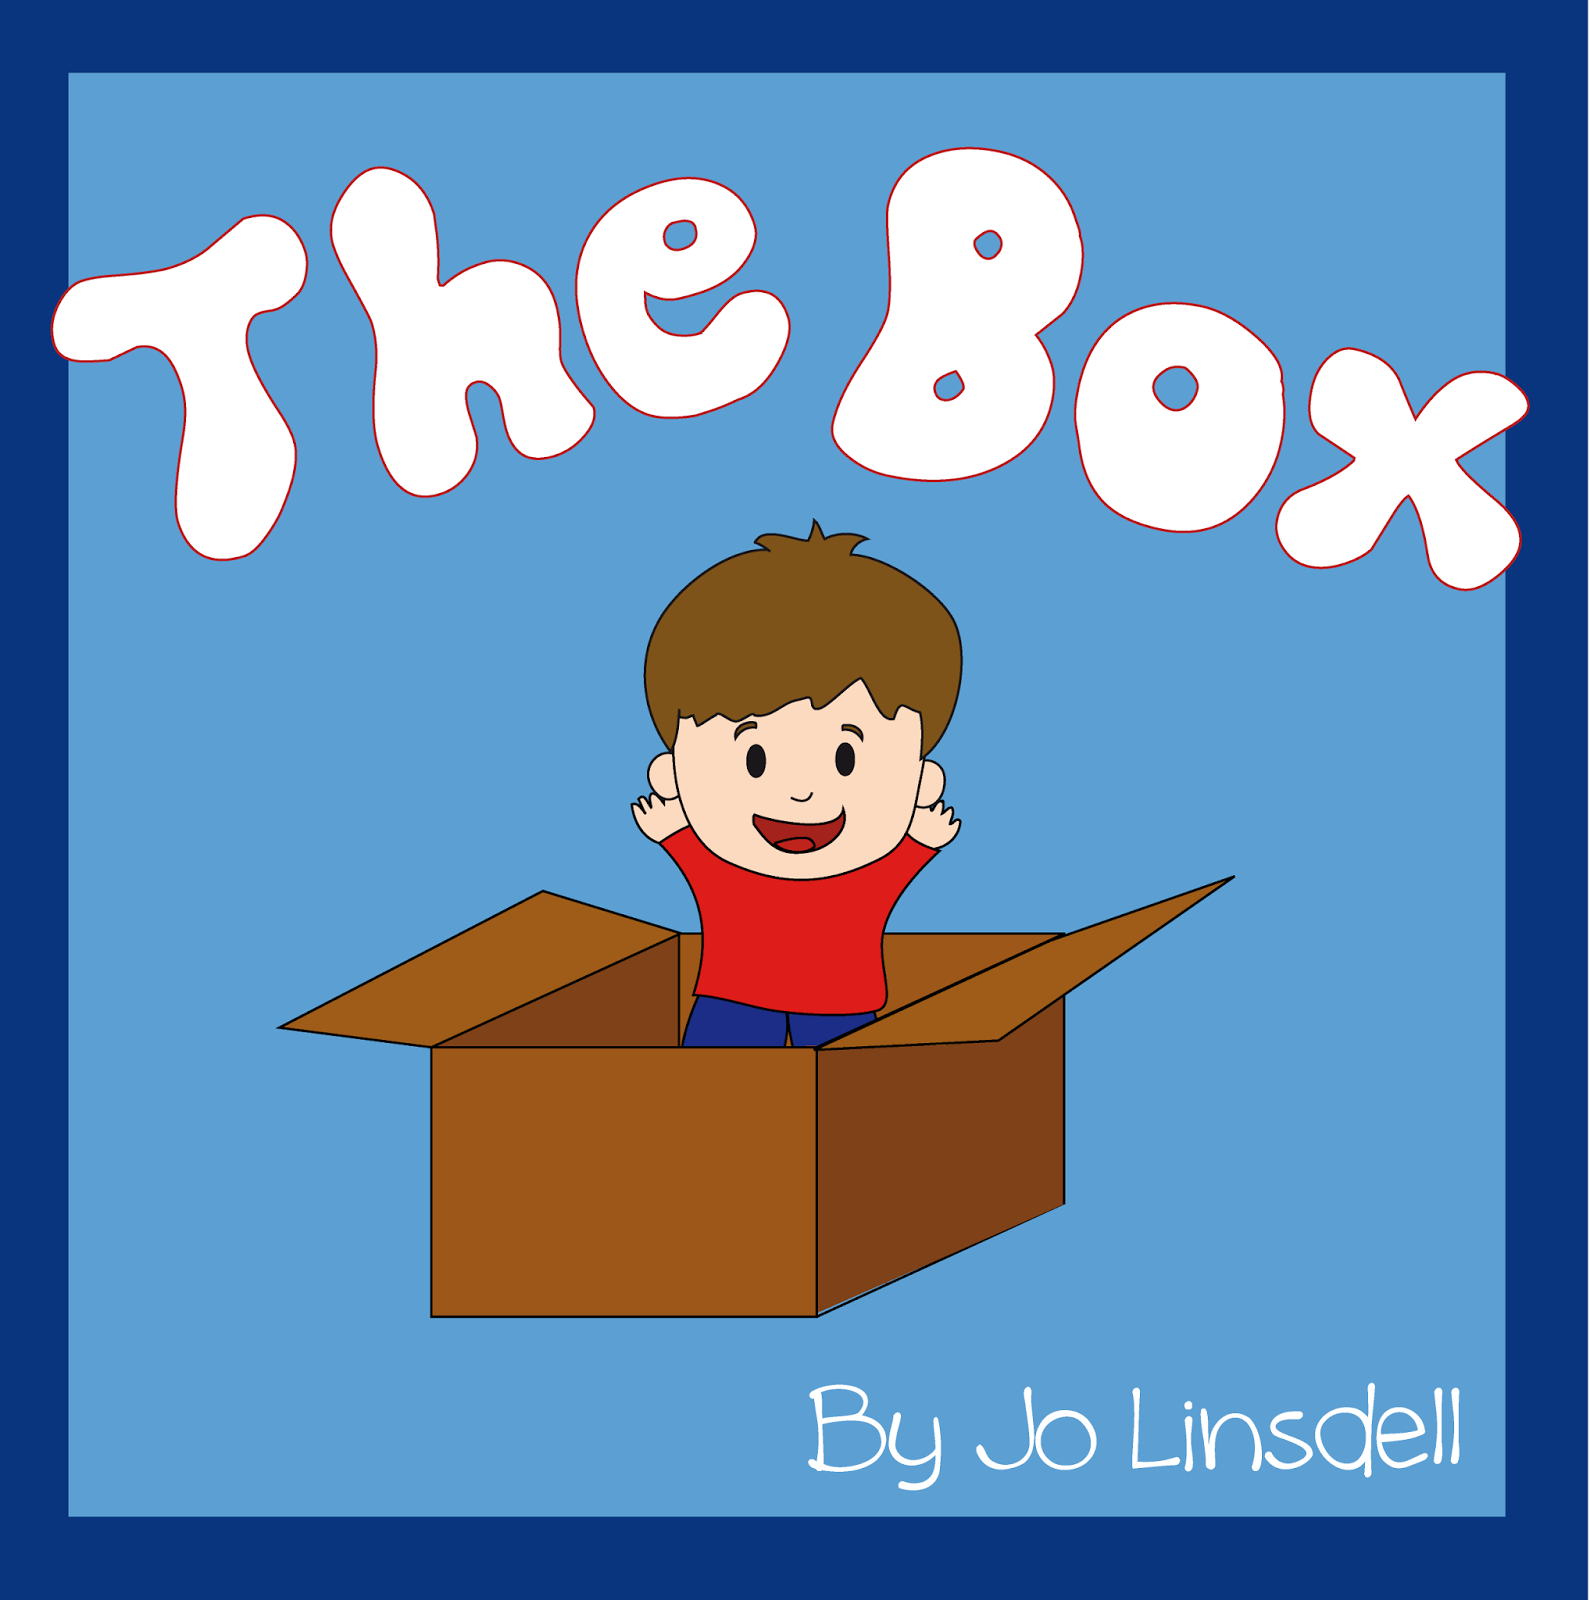 The Box by Jo Linsdell